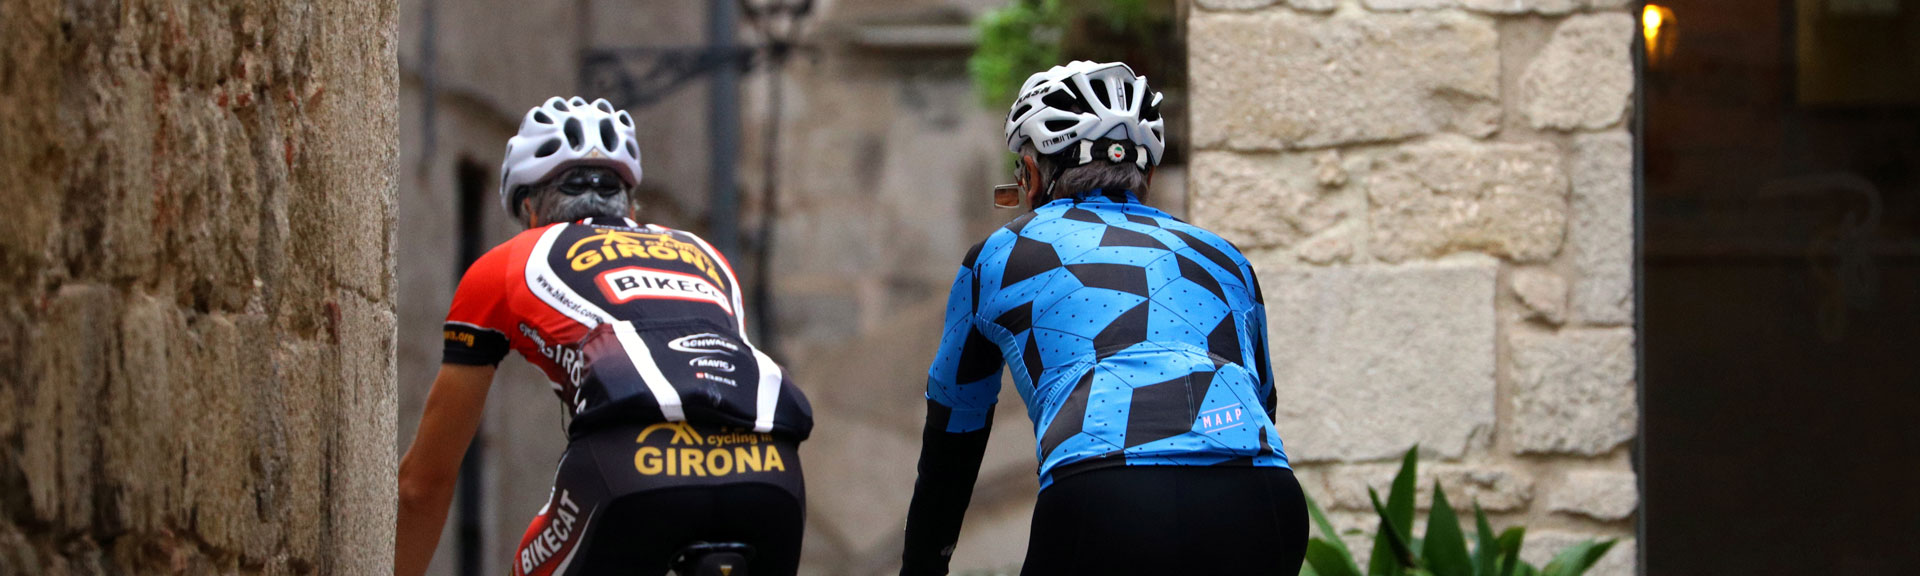 Bikecat Guided Rides in Girona